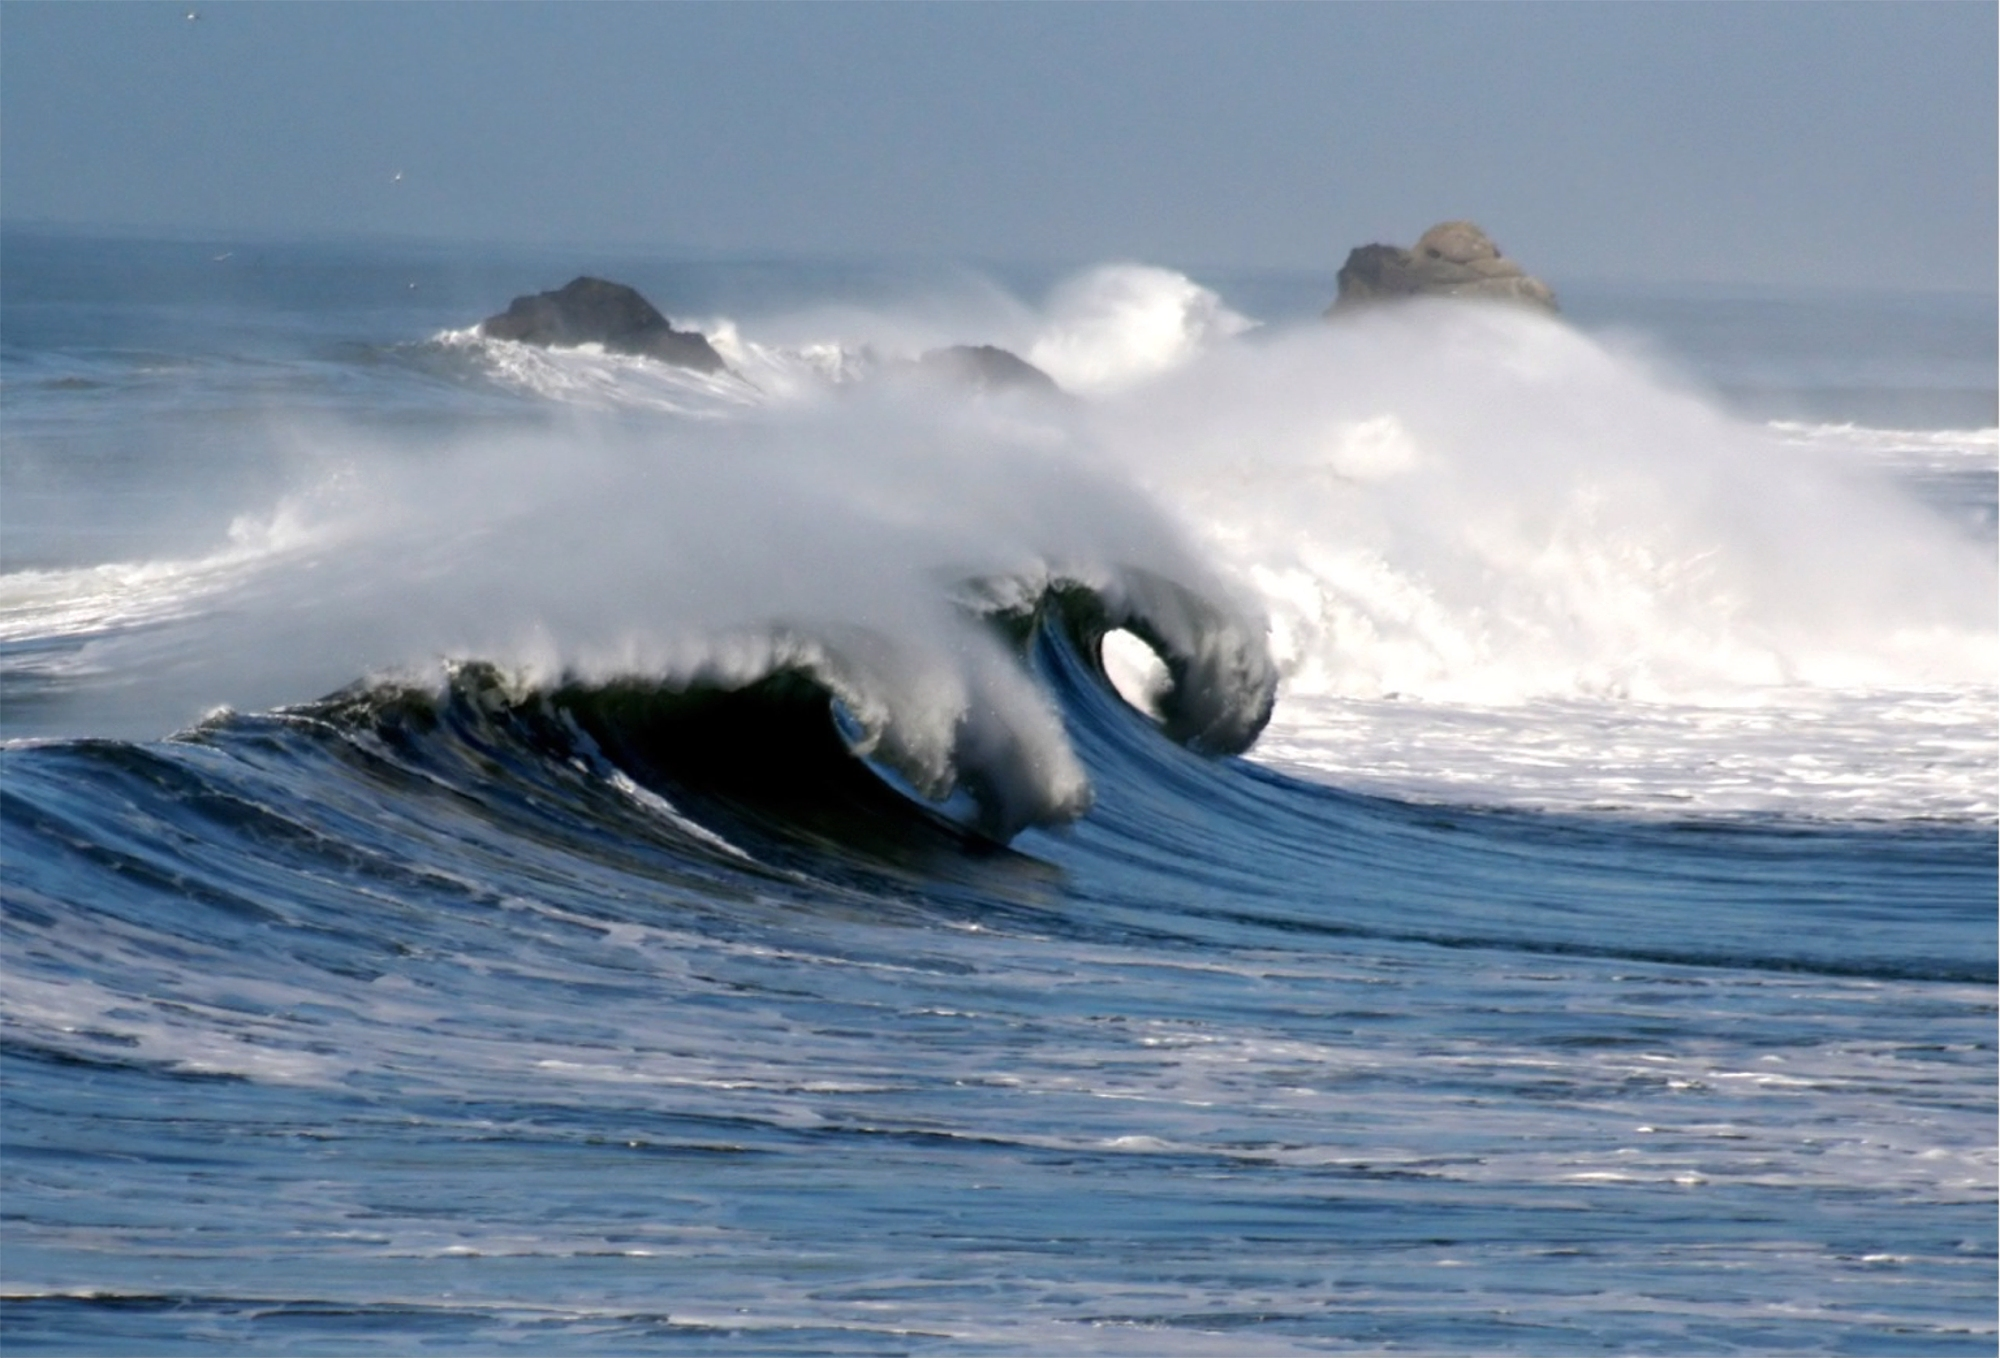 Waves_in_pacifica_1.jpg (2000×1358)